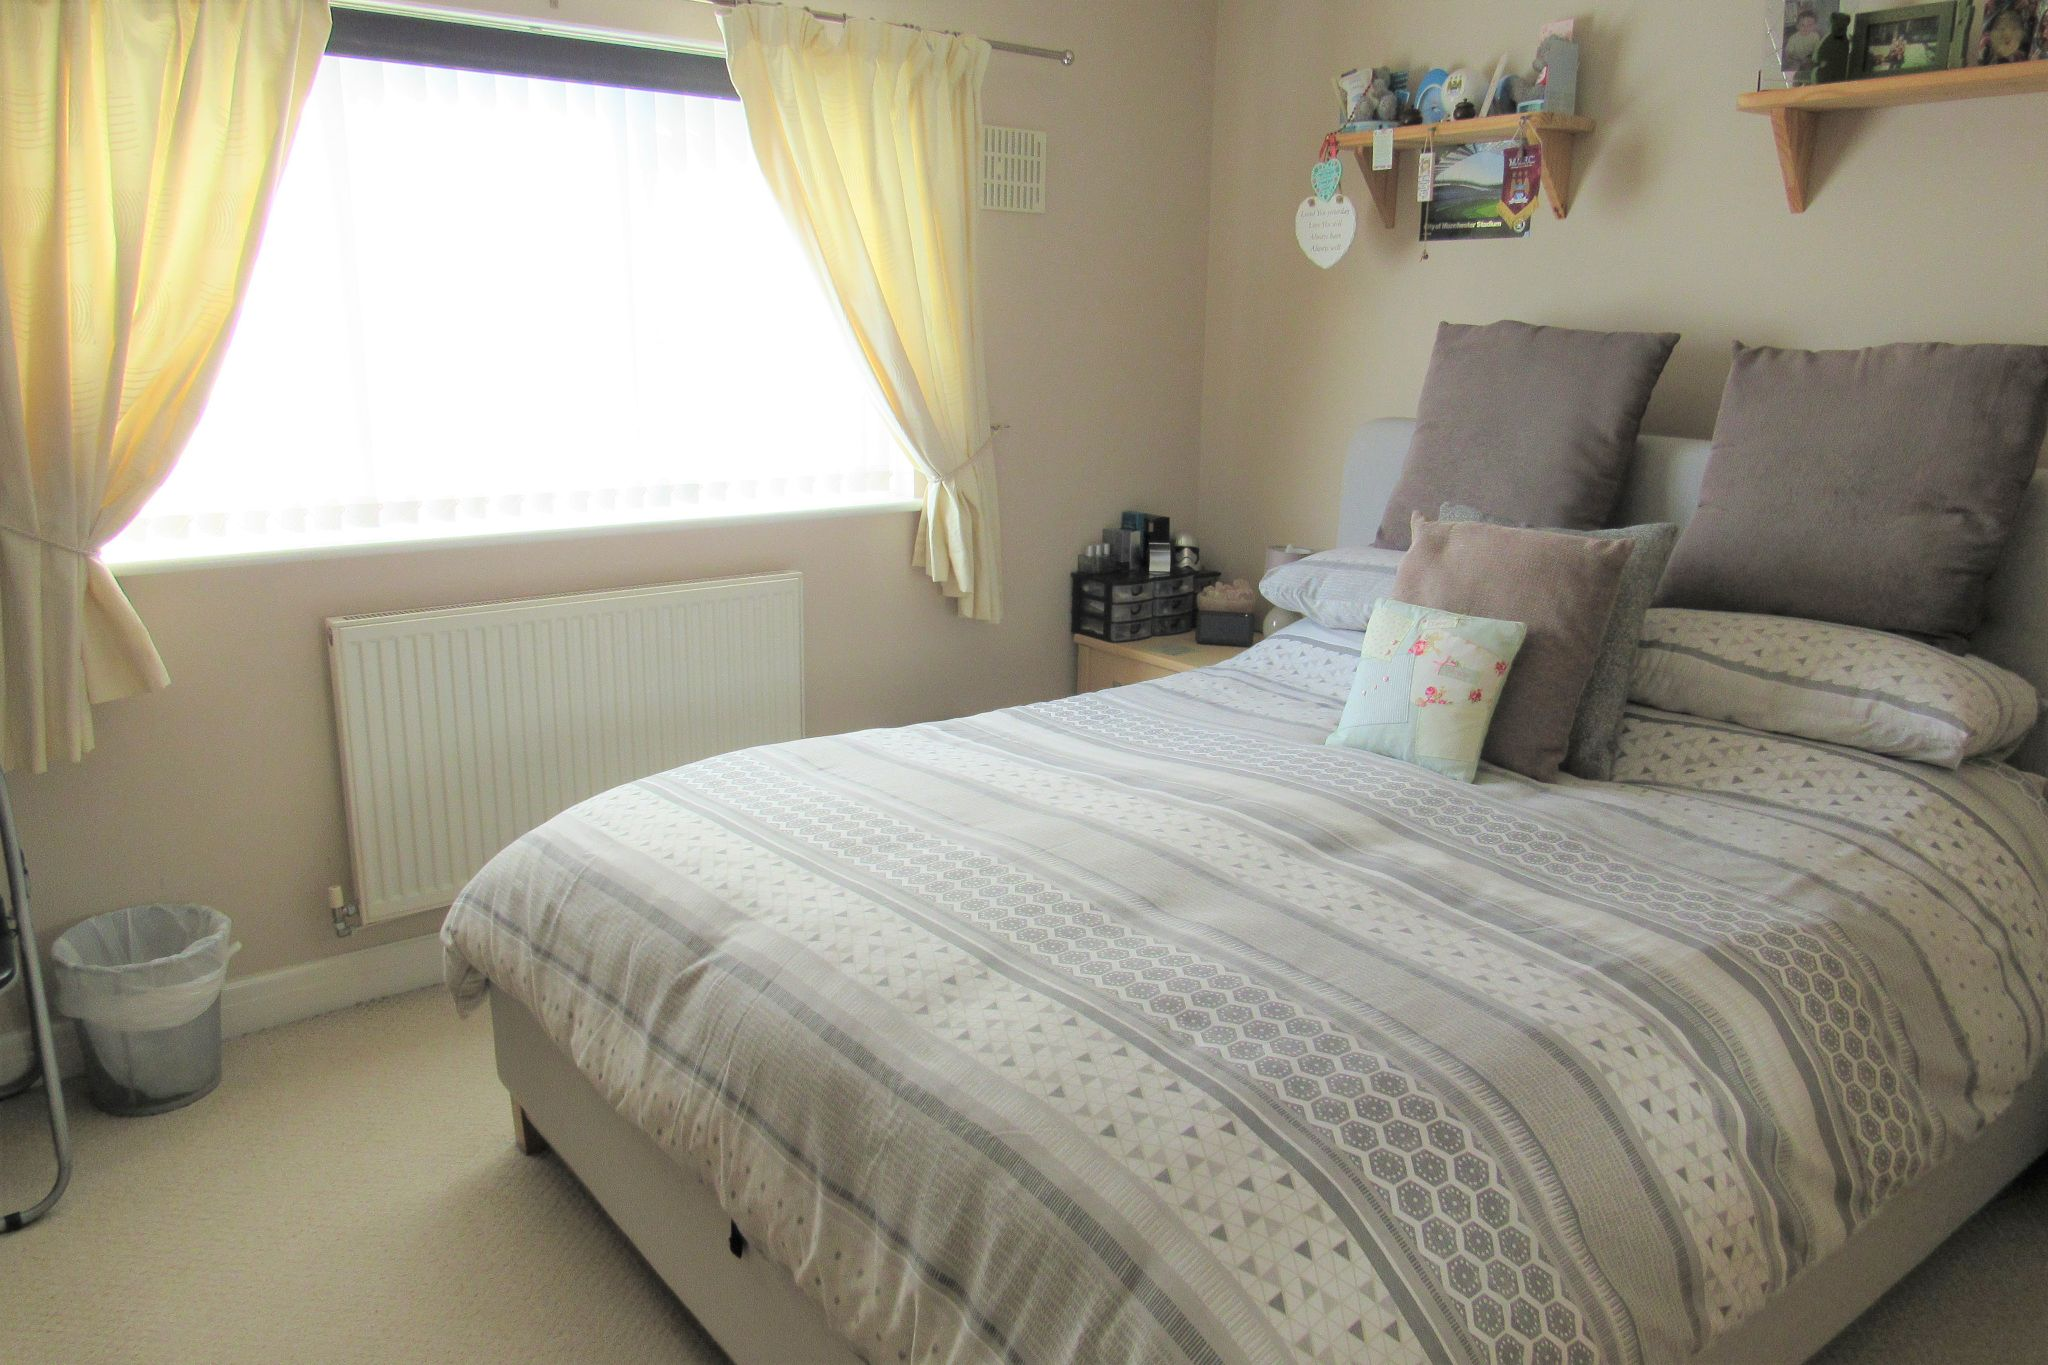 2 bedroom semi-detached house SSTC in Manchester - Photograph 14.